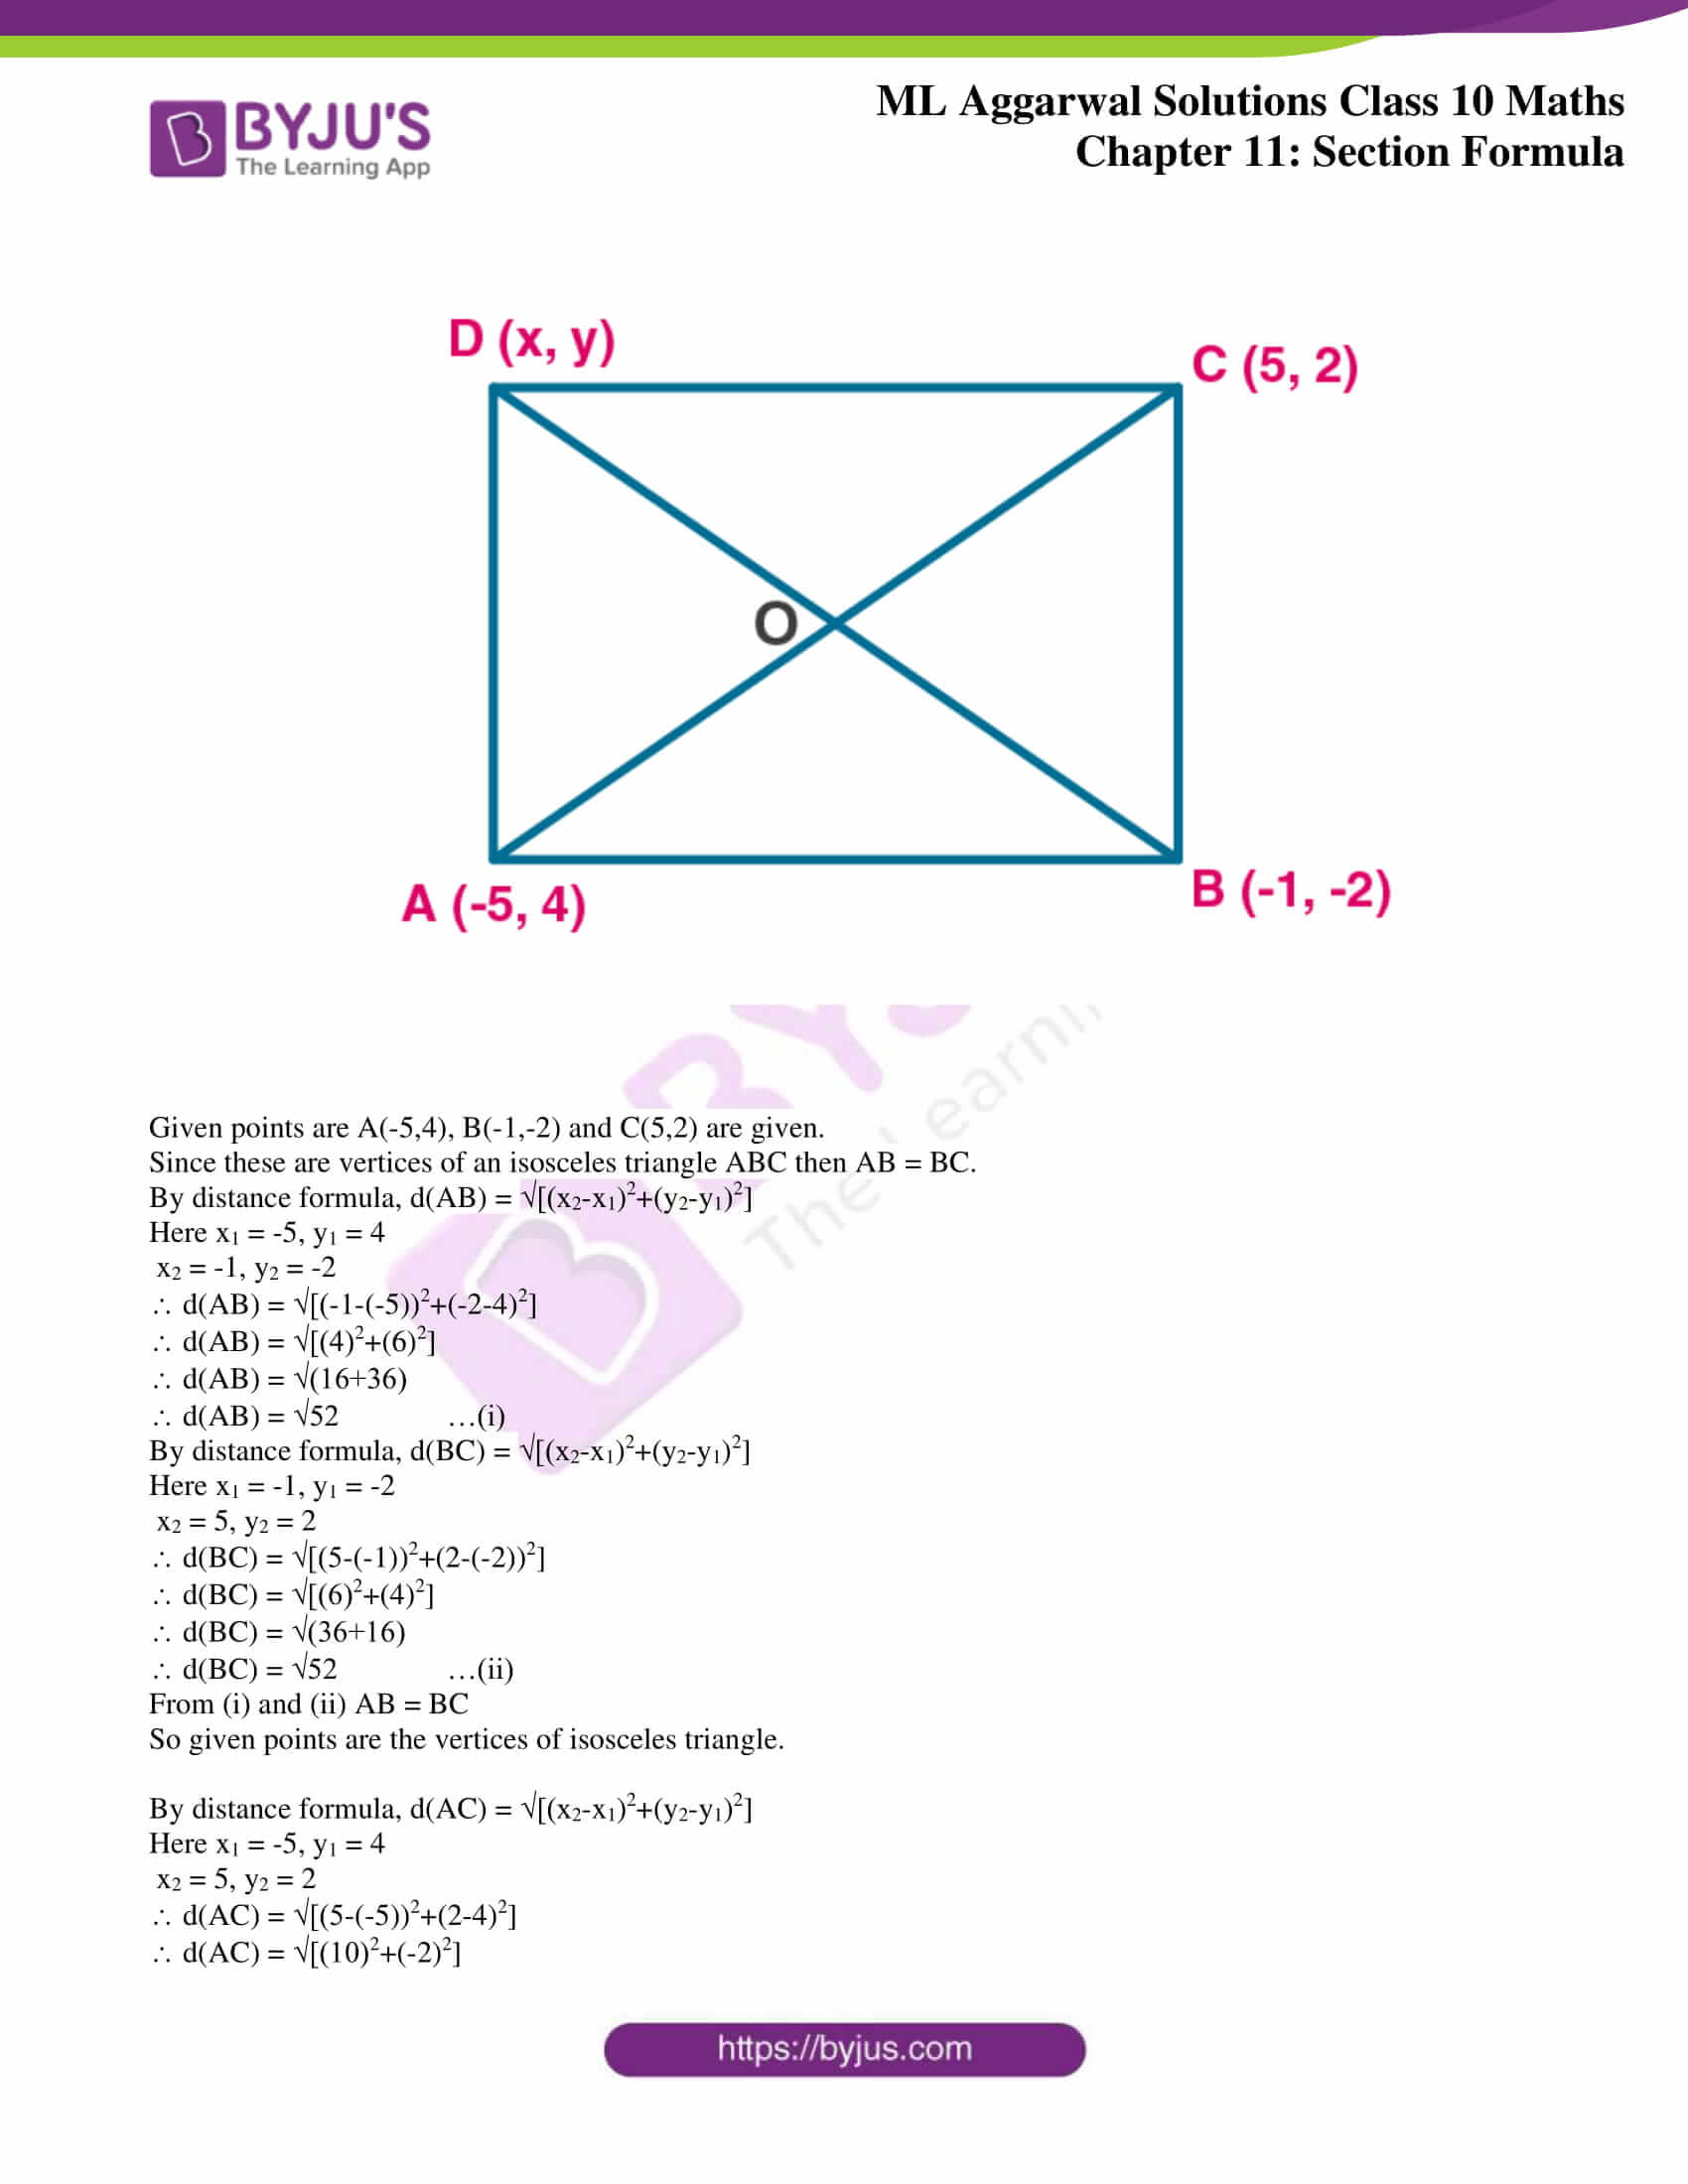 ml aggarwal solutions class 10 maths chapter 11 20